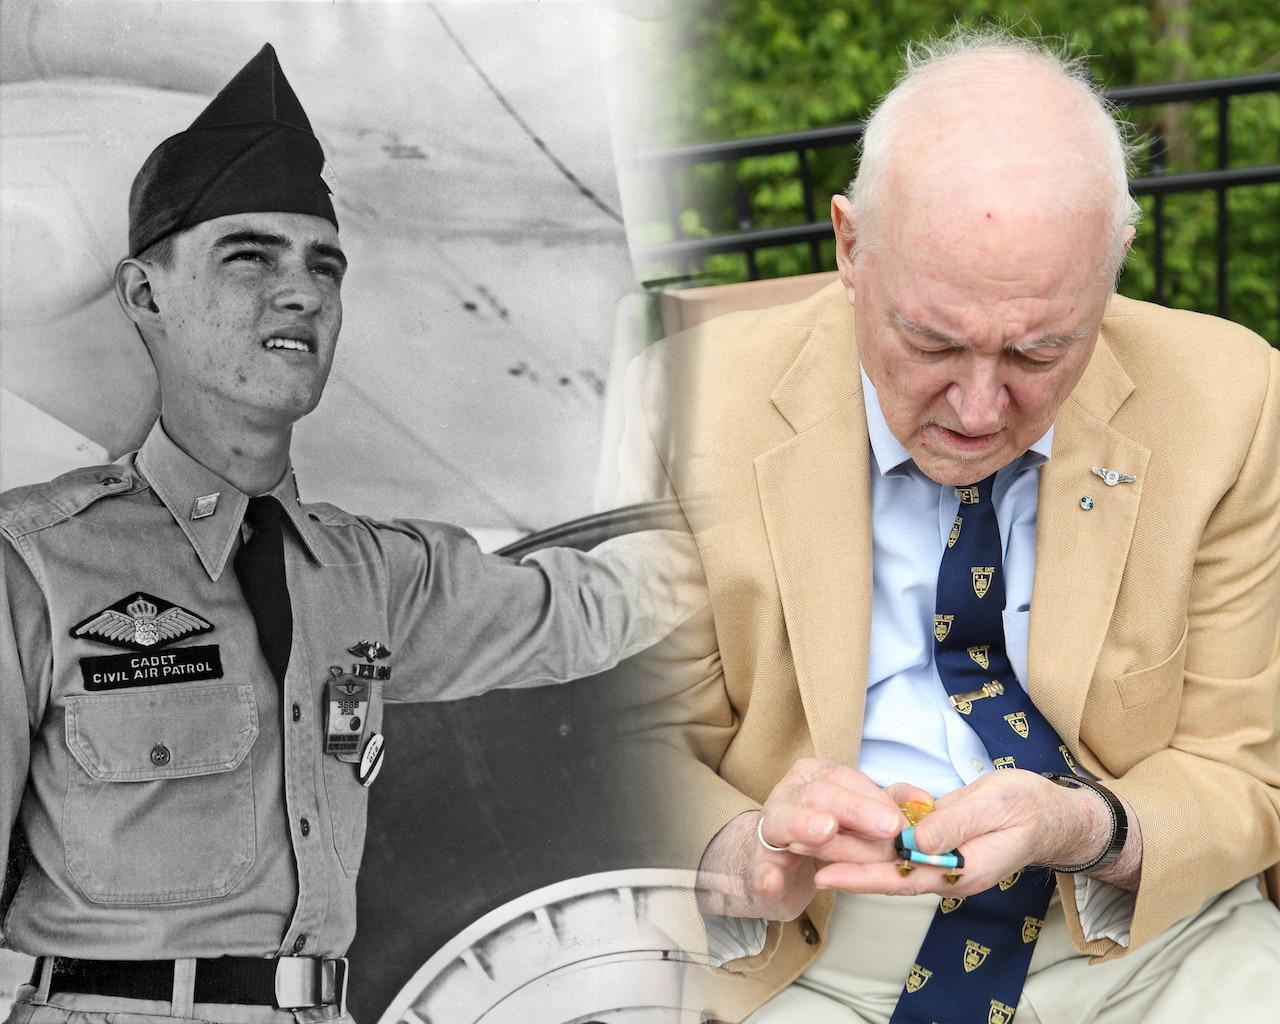 A photo on the left shows a young man touching an airplane; on the right is an older man looking down at a medal in his hand.